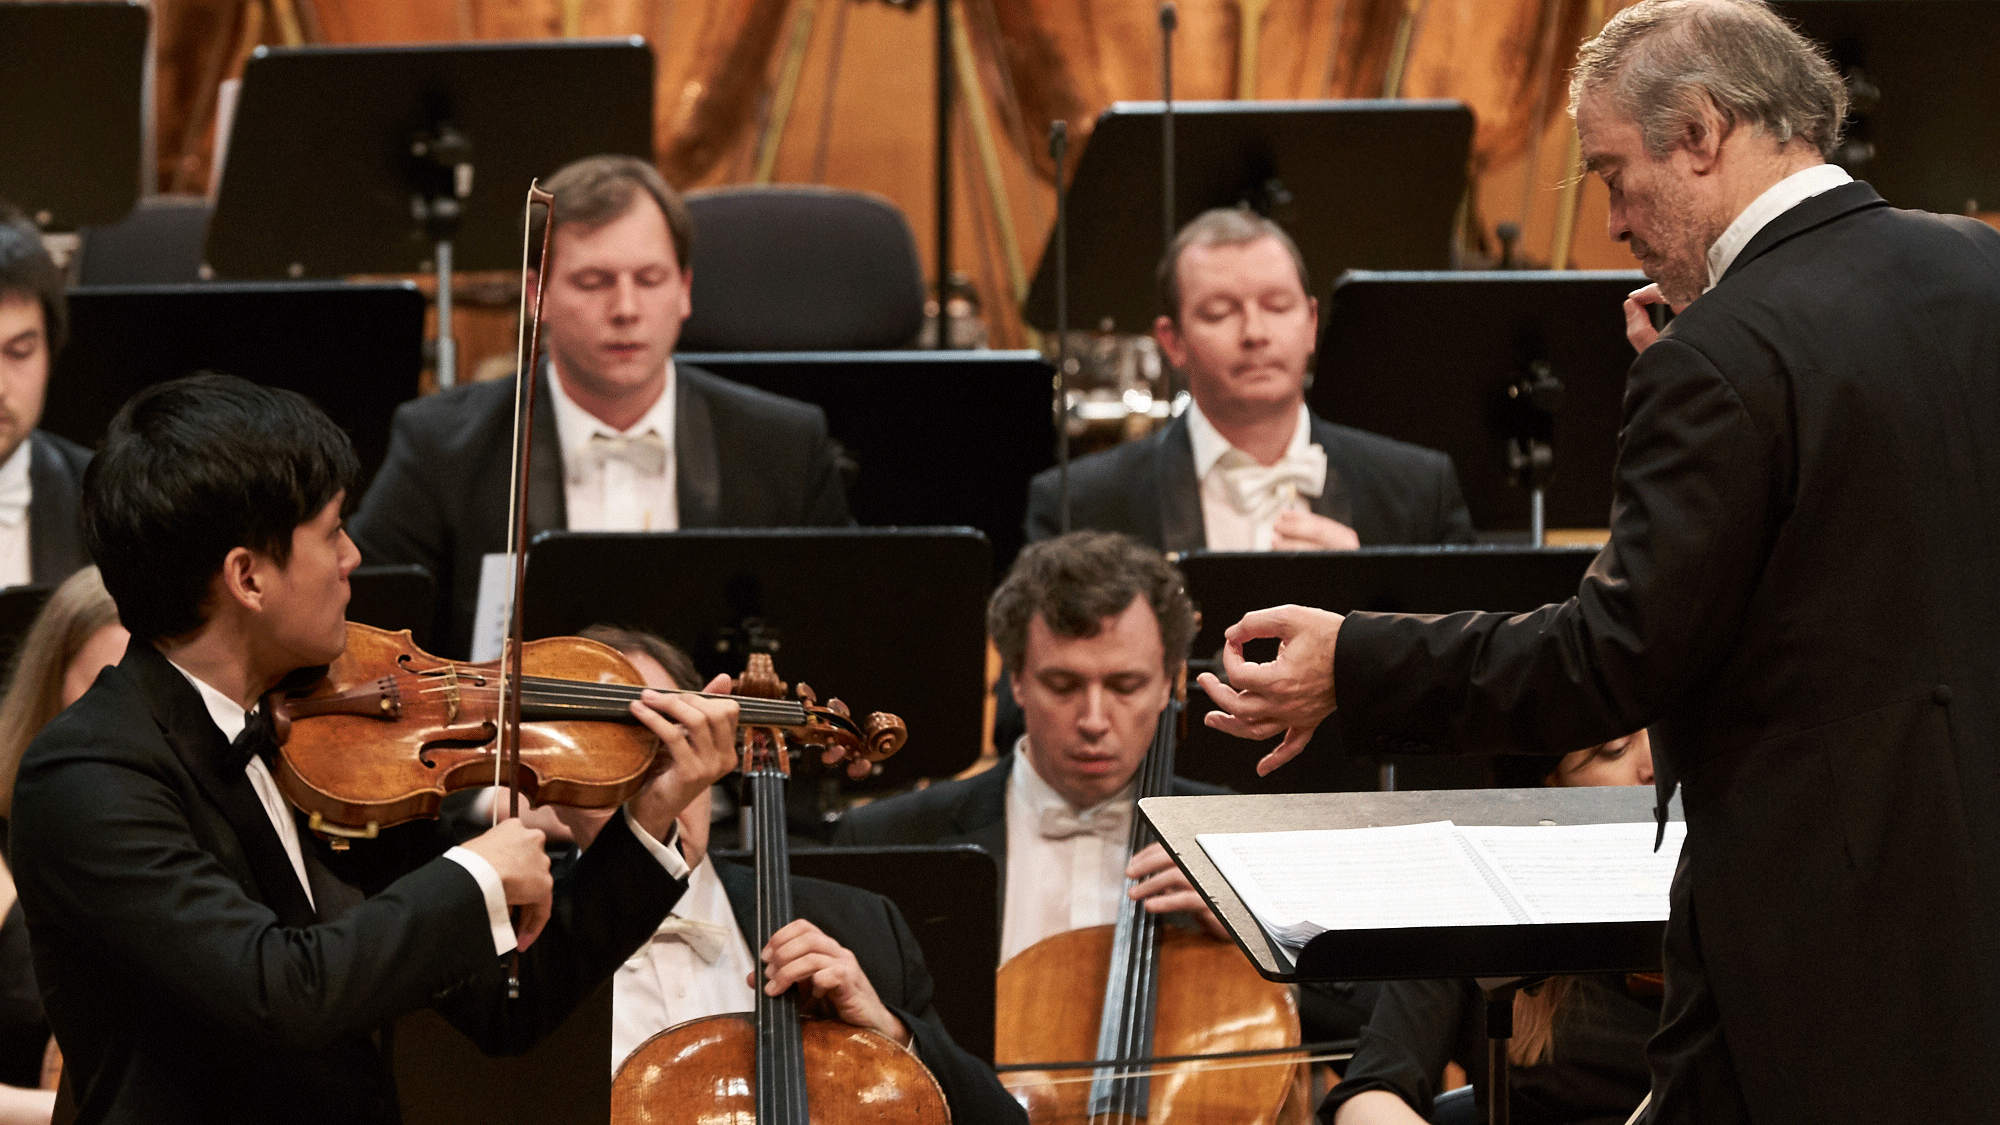 Valery Gergiev conducts Mozart's Violin Concert No. 4 – With Yu-Chien Tseng